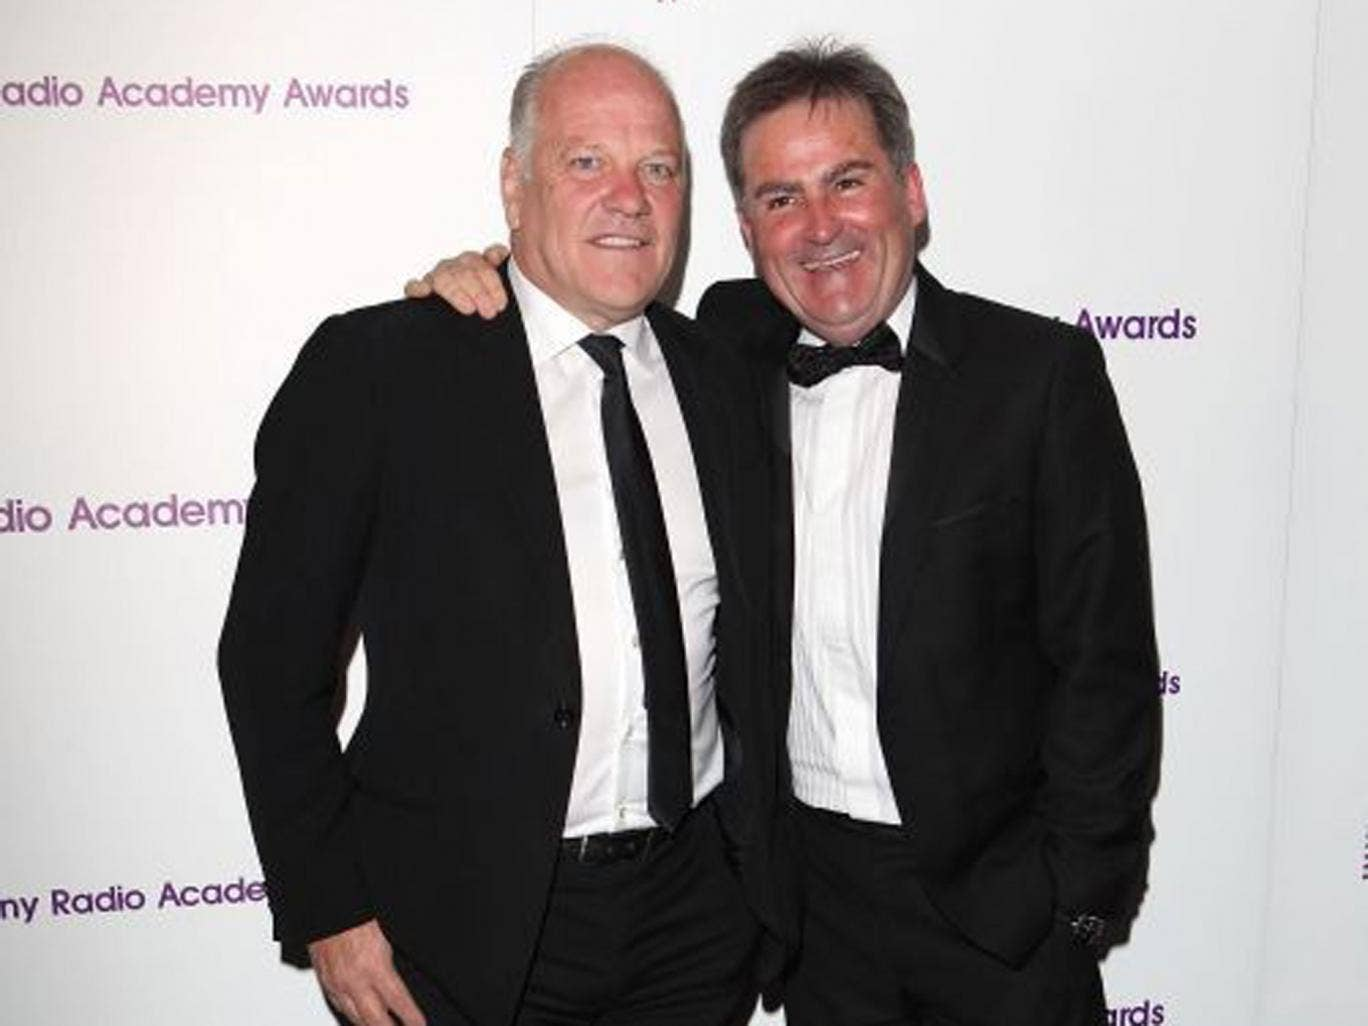 BT's decision to use Andy Gray makes him a controversial bedfellow, so to speak, with their star female presenter Clare Balding